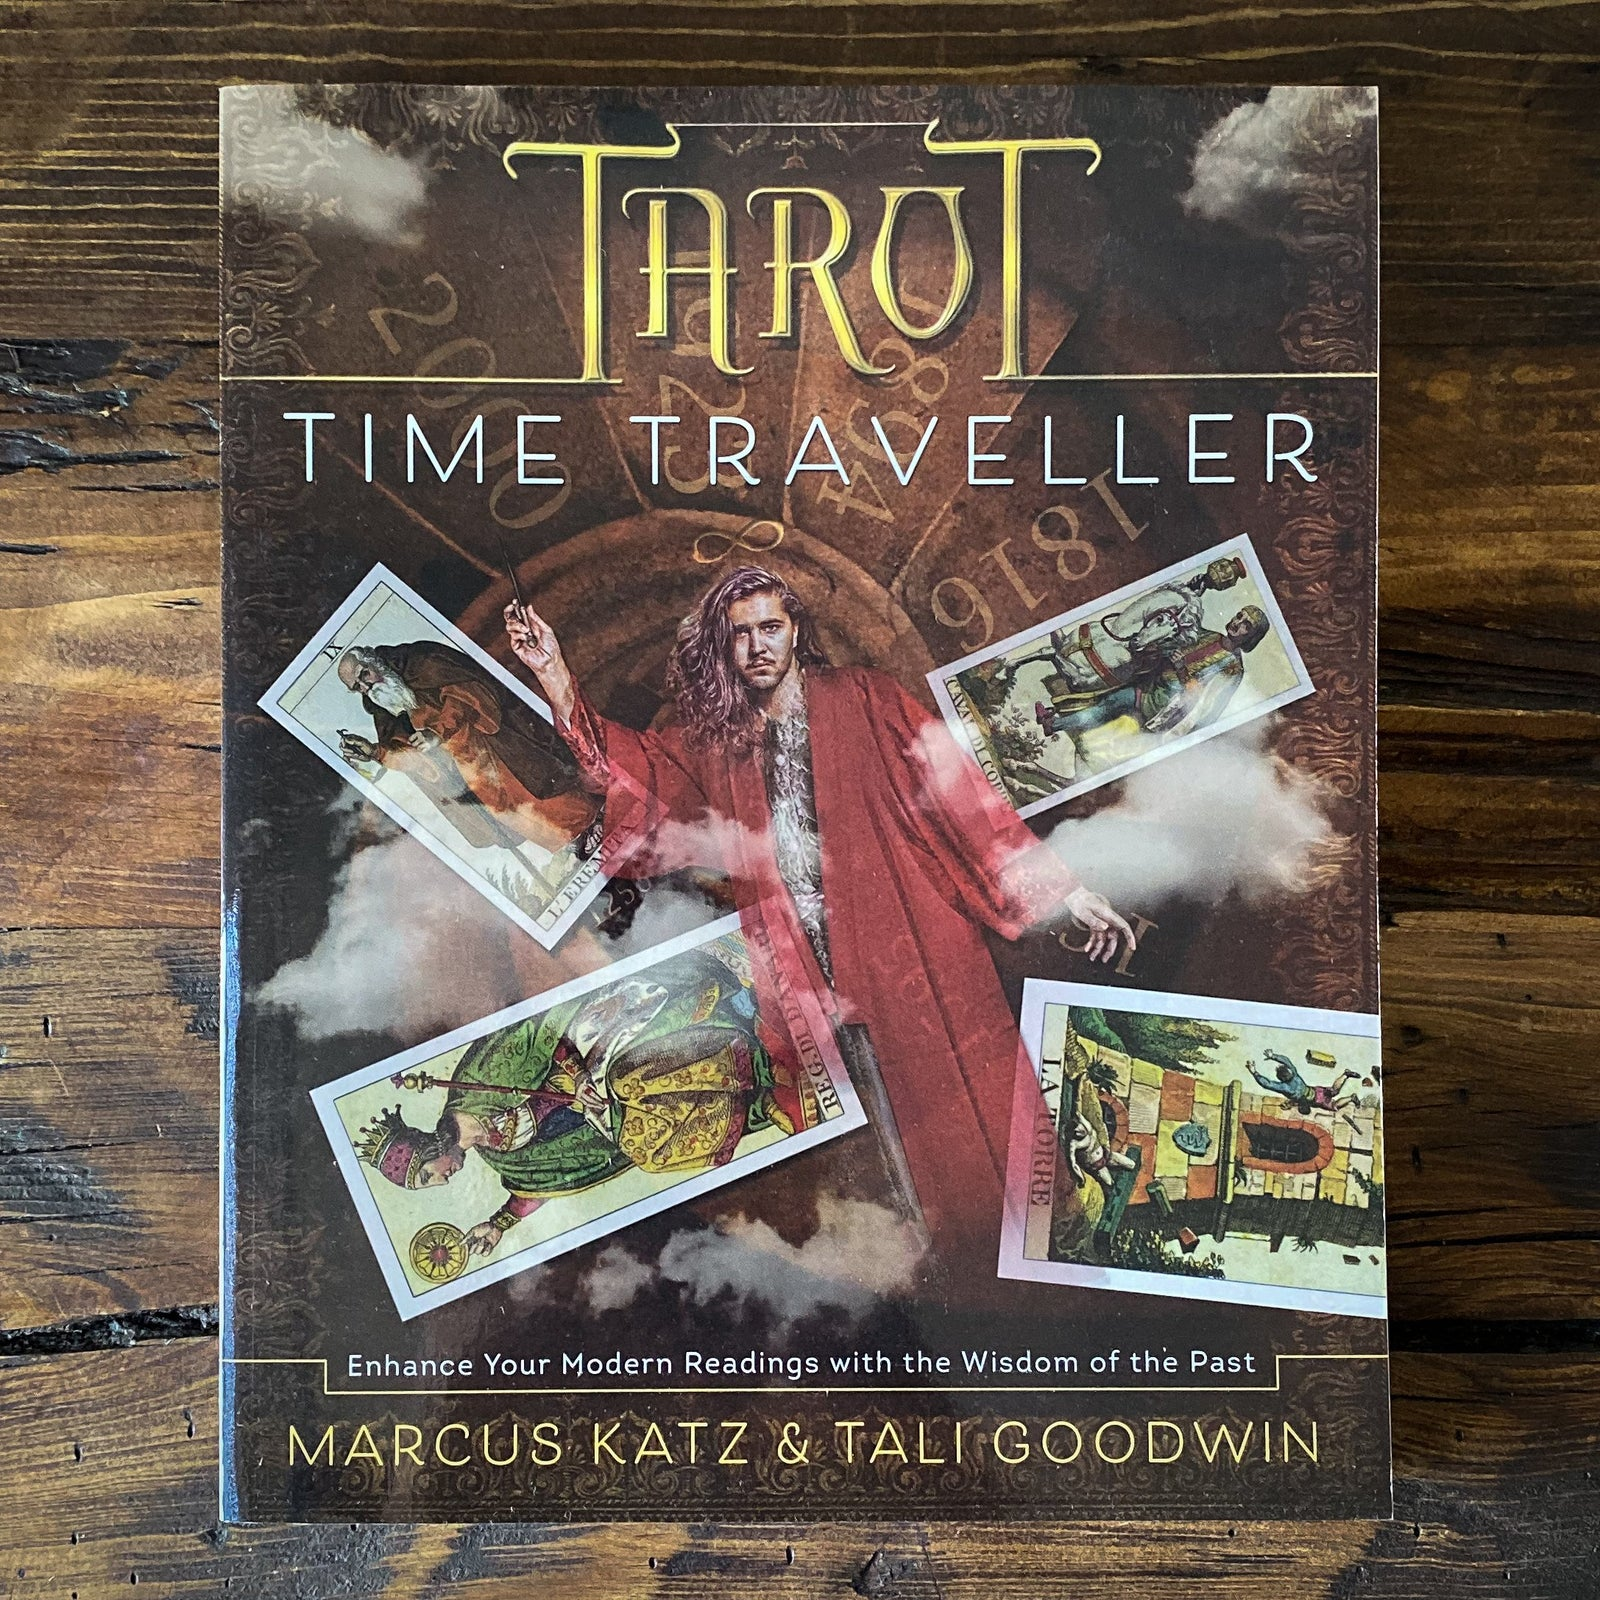 Tarot Time Traveller - Enhance your Modern Readings with the Wisdom of the Past